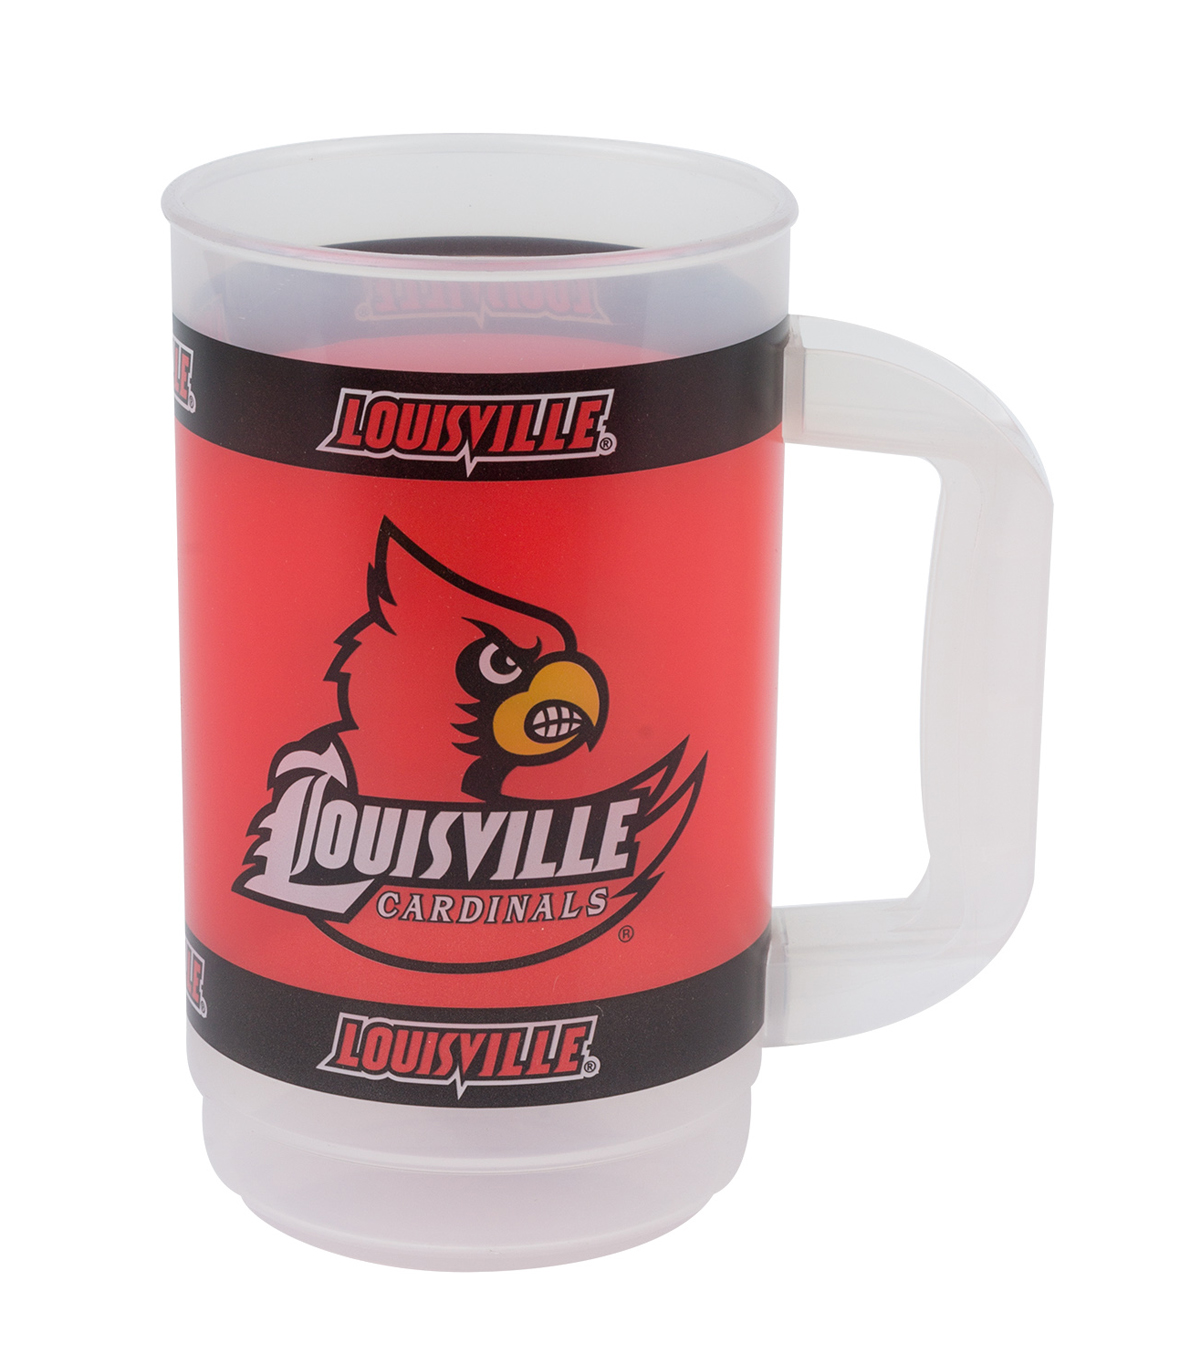 University of Louisville Cardinals 32oz Stein